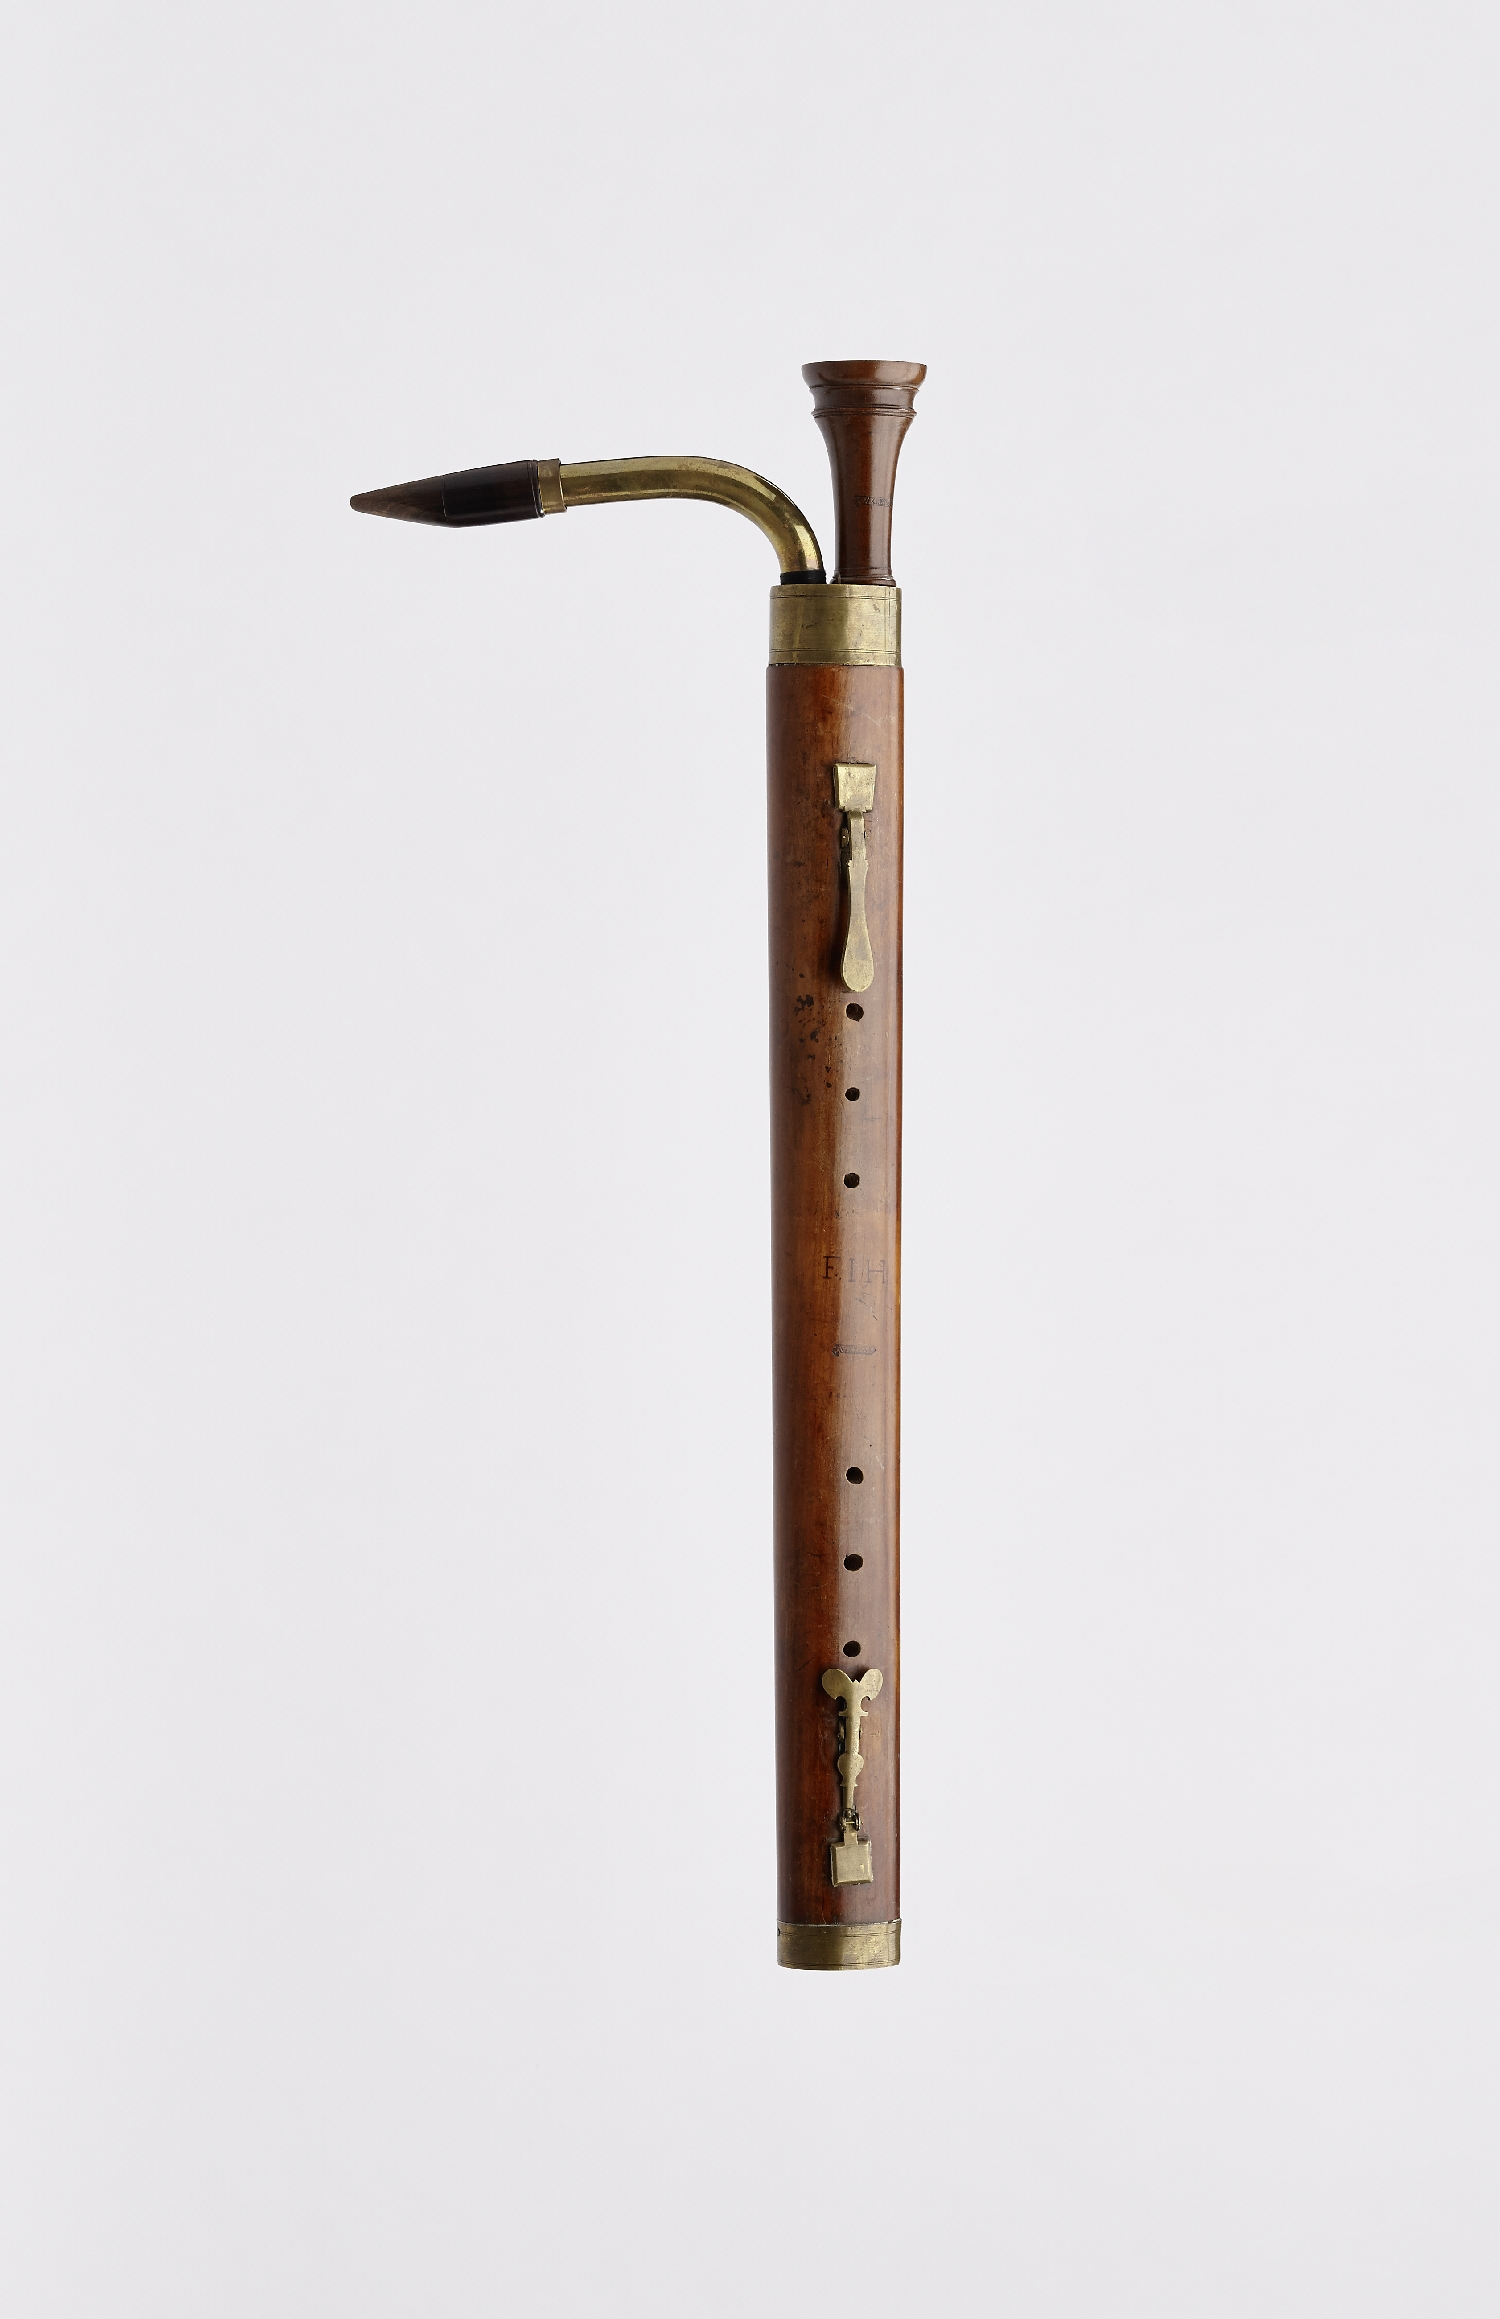 Bass shawm, W. Kress, ca. 1700, wood (pear wood?), brass, inv. no. MI 1253